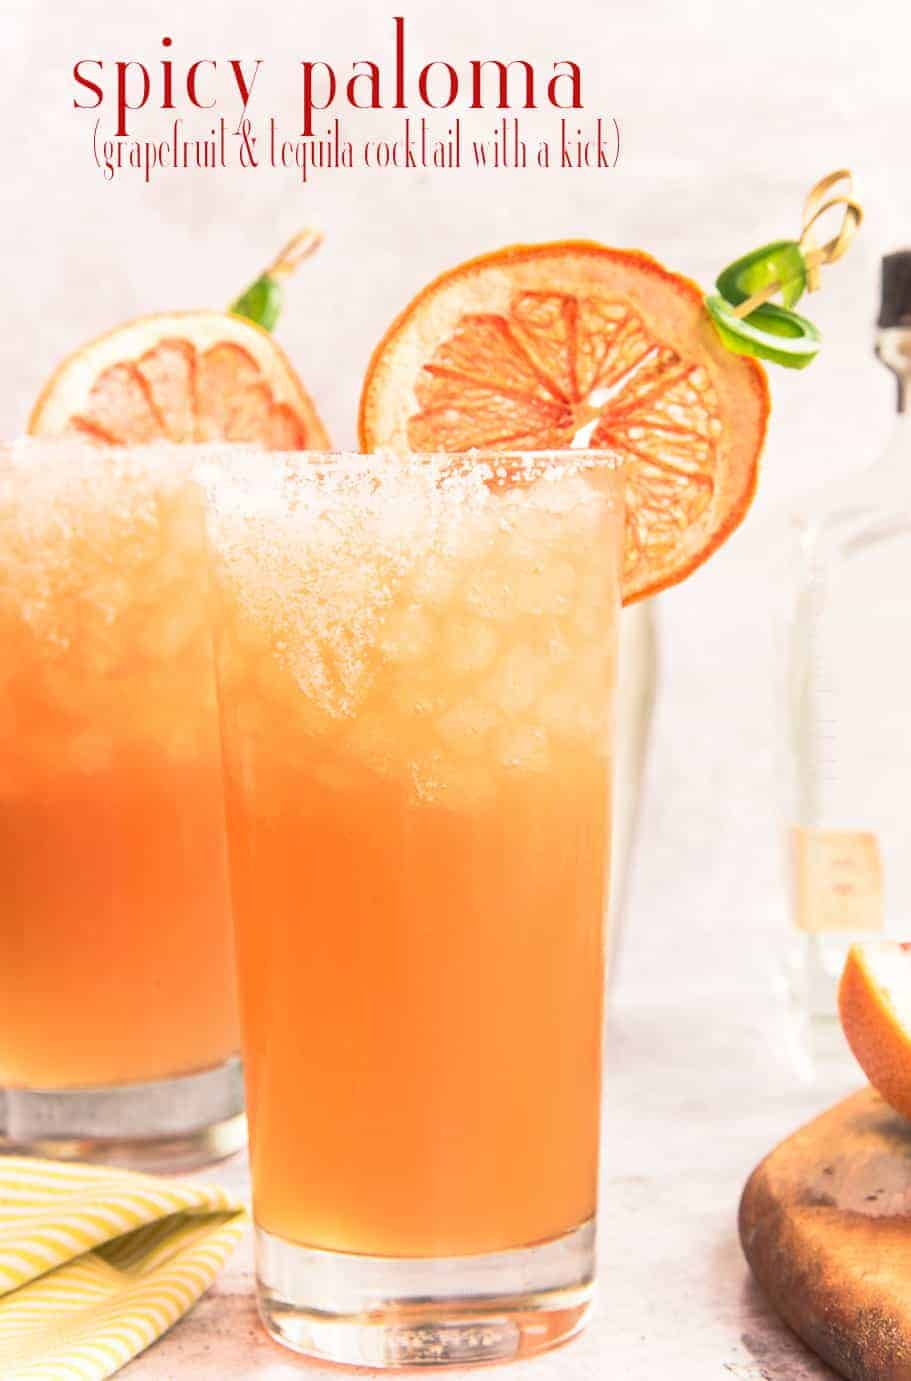 A Spicy Paloma Cocktail will warm you from the inside out. Made with freshly-squeezed grapefruit juice and grapefruit soda, it's tart flavor with a sweet kick of brown sugar simple syrup infused with tequila will offer refreshment throughout the summer. #palomacocktail #paloma #grapefruitsoda #jarritos #jarritostoronja #grapefruitcocktail #spicycocktail #cocktailrecipe #palomacocktailrecipe #tequilablanco via @ediblesense